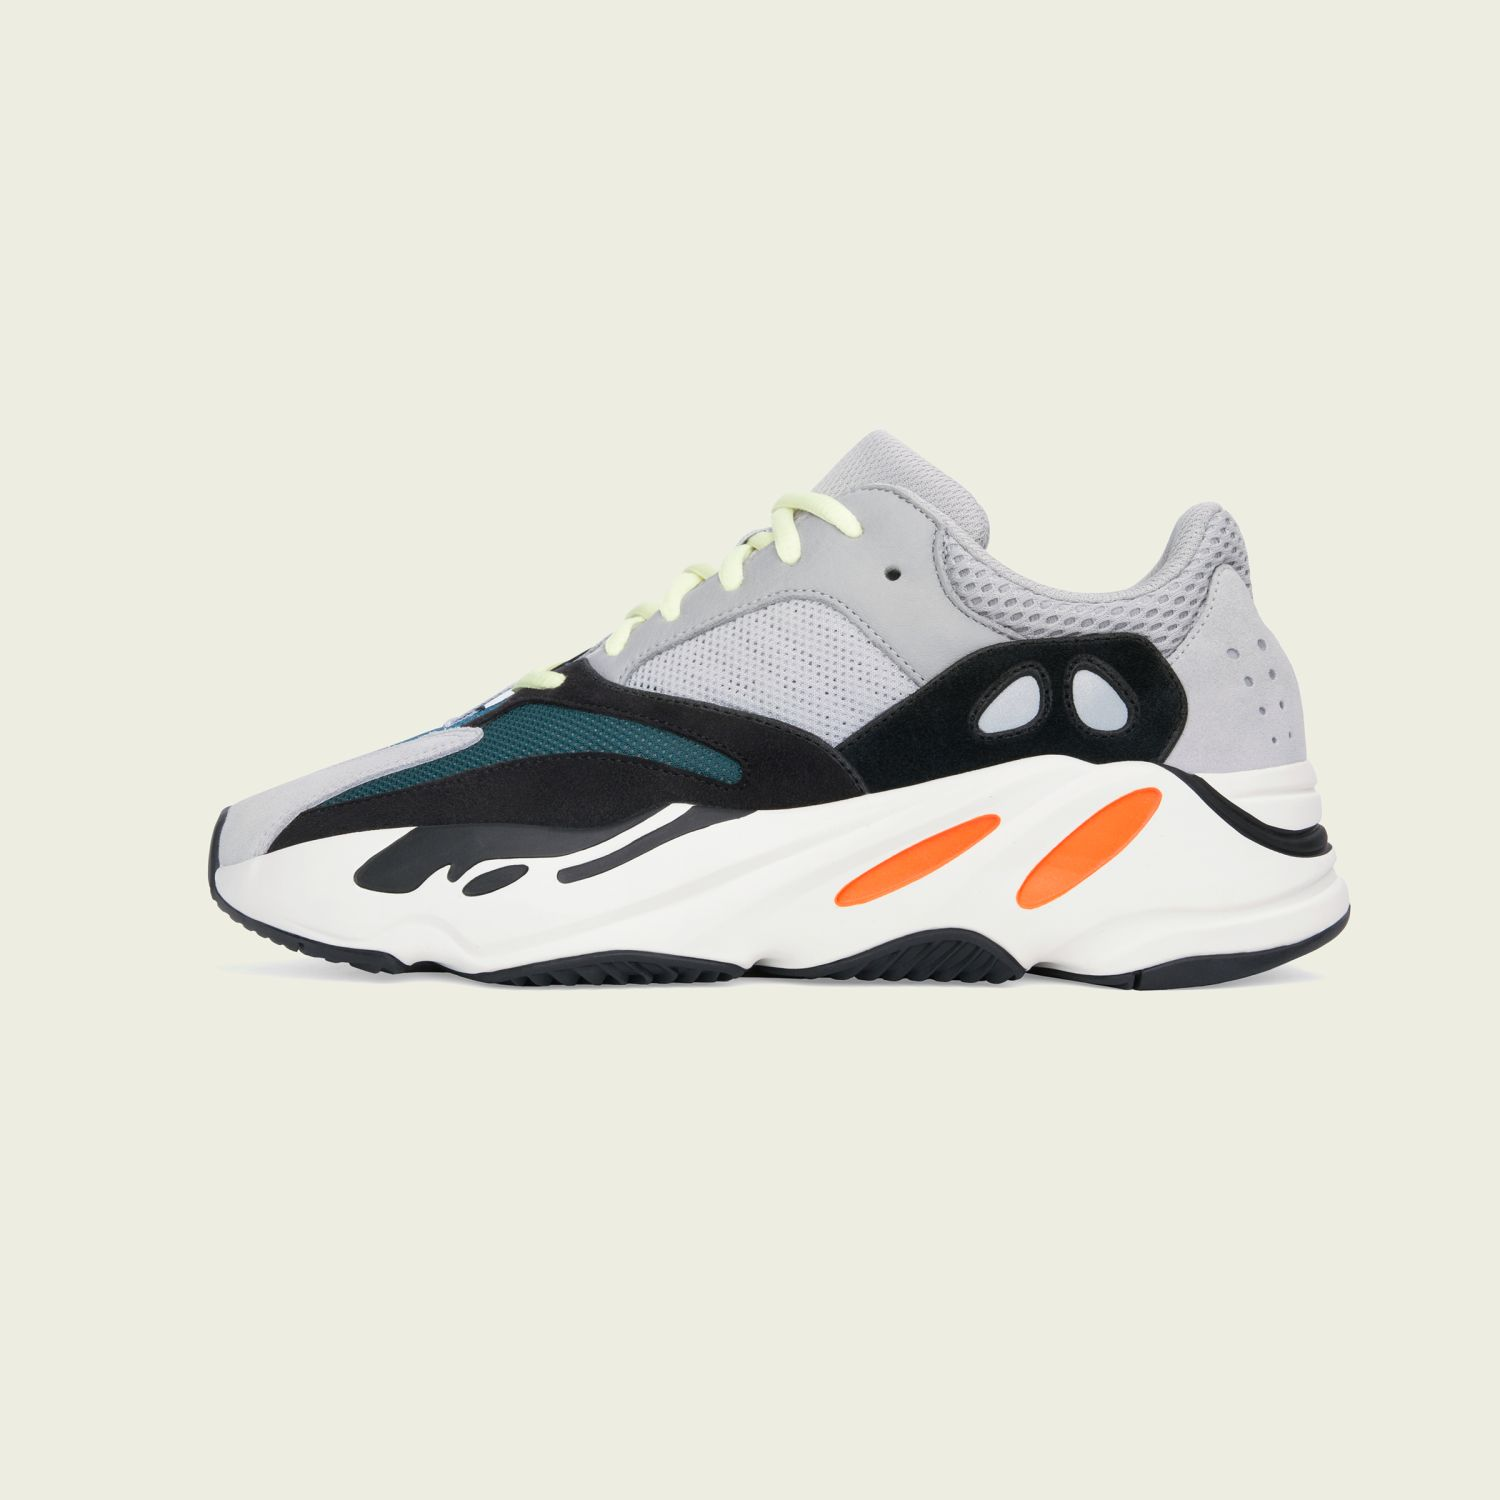 Yeezy Wave Runner 700 Solid Grey [2]